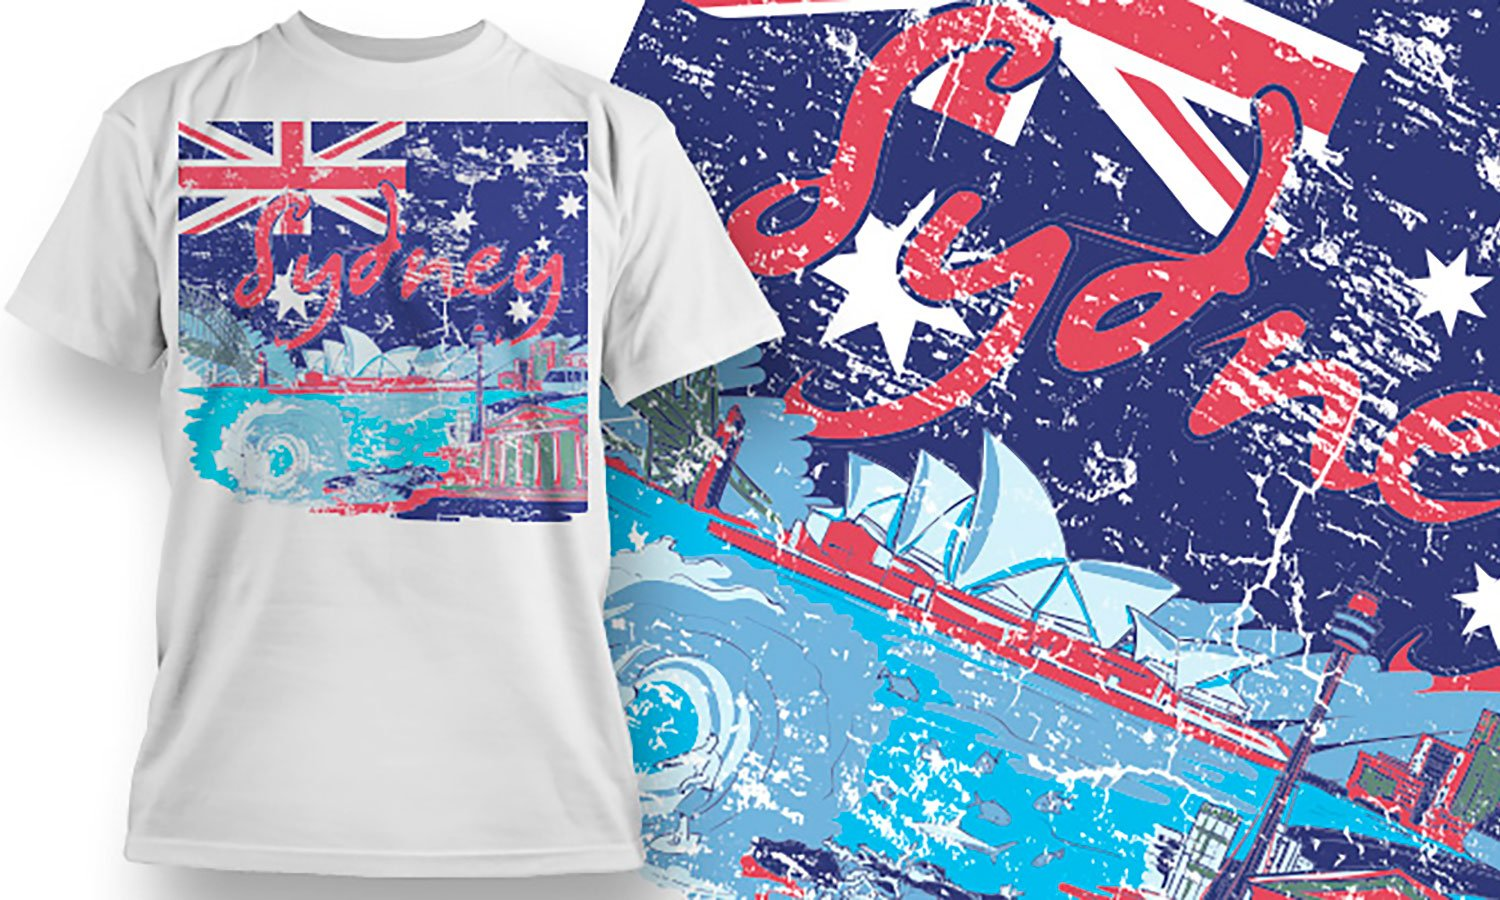 Sydney - Printed T-Shirt for Men, Women and Kids - TS116